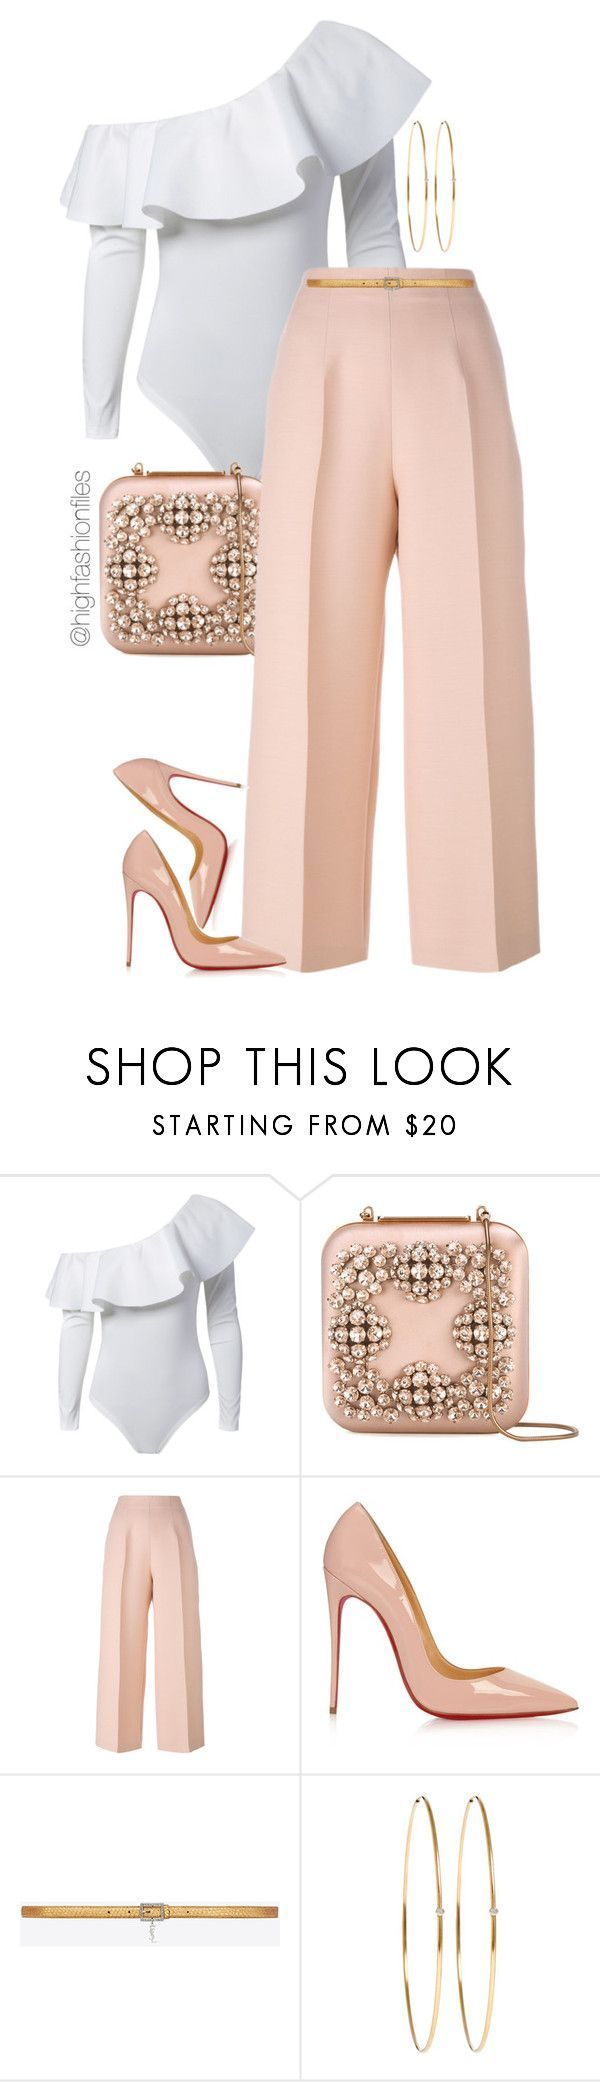 Untitled #2737 by highfashionfiles ❤ liked on Polyvore featuring Manolo Blahnik, Fendi, Christian Louboutin, Yves Saint Laurent and Jennifer Meyer Jewelry #manoloblahnikheelsbeautiful #manoloblahnikheelsfashion